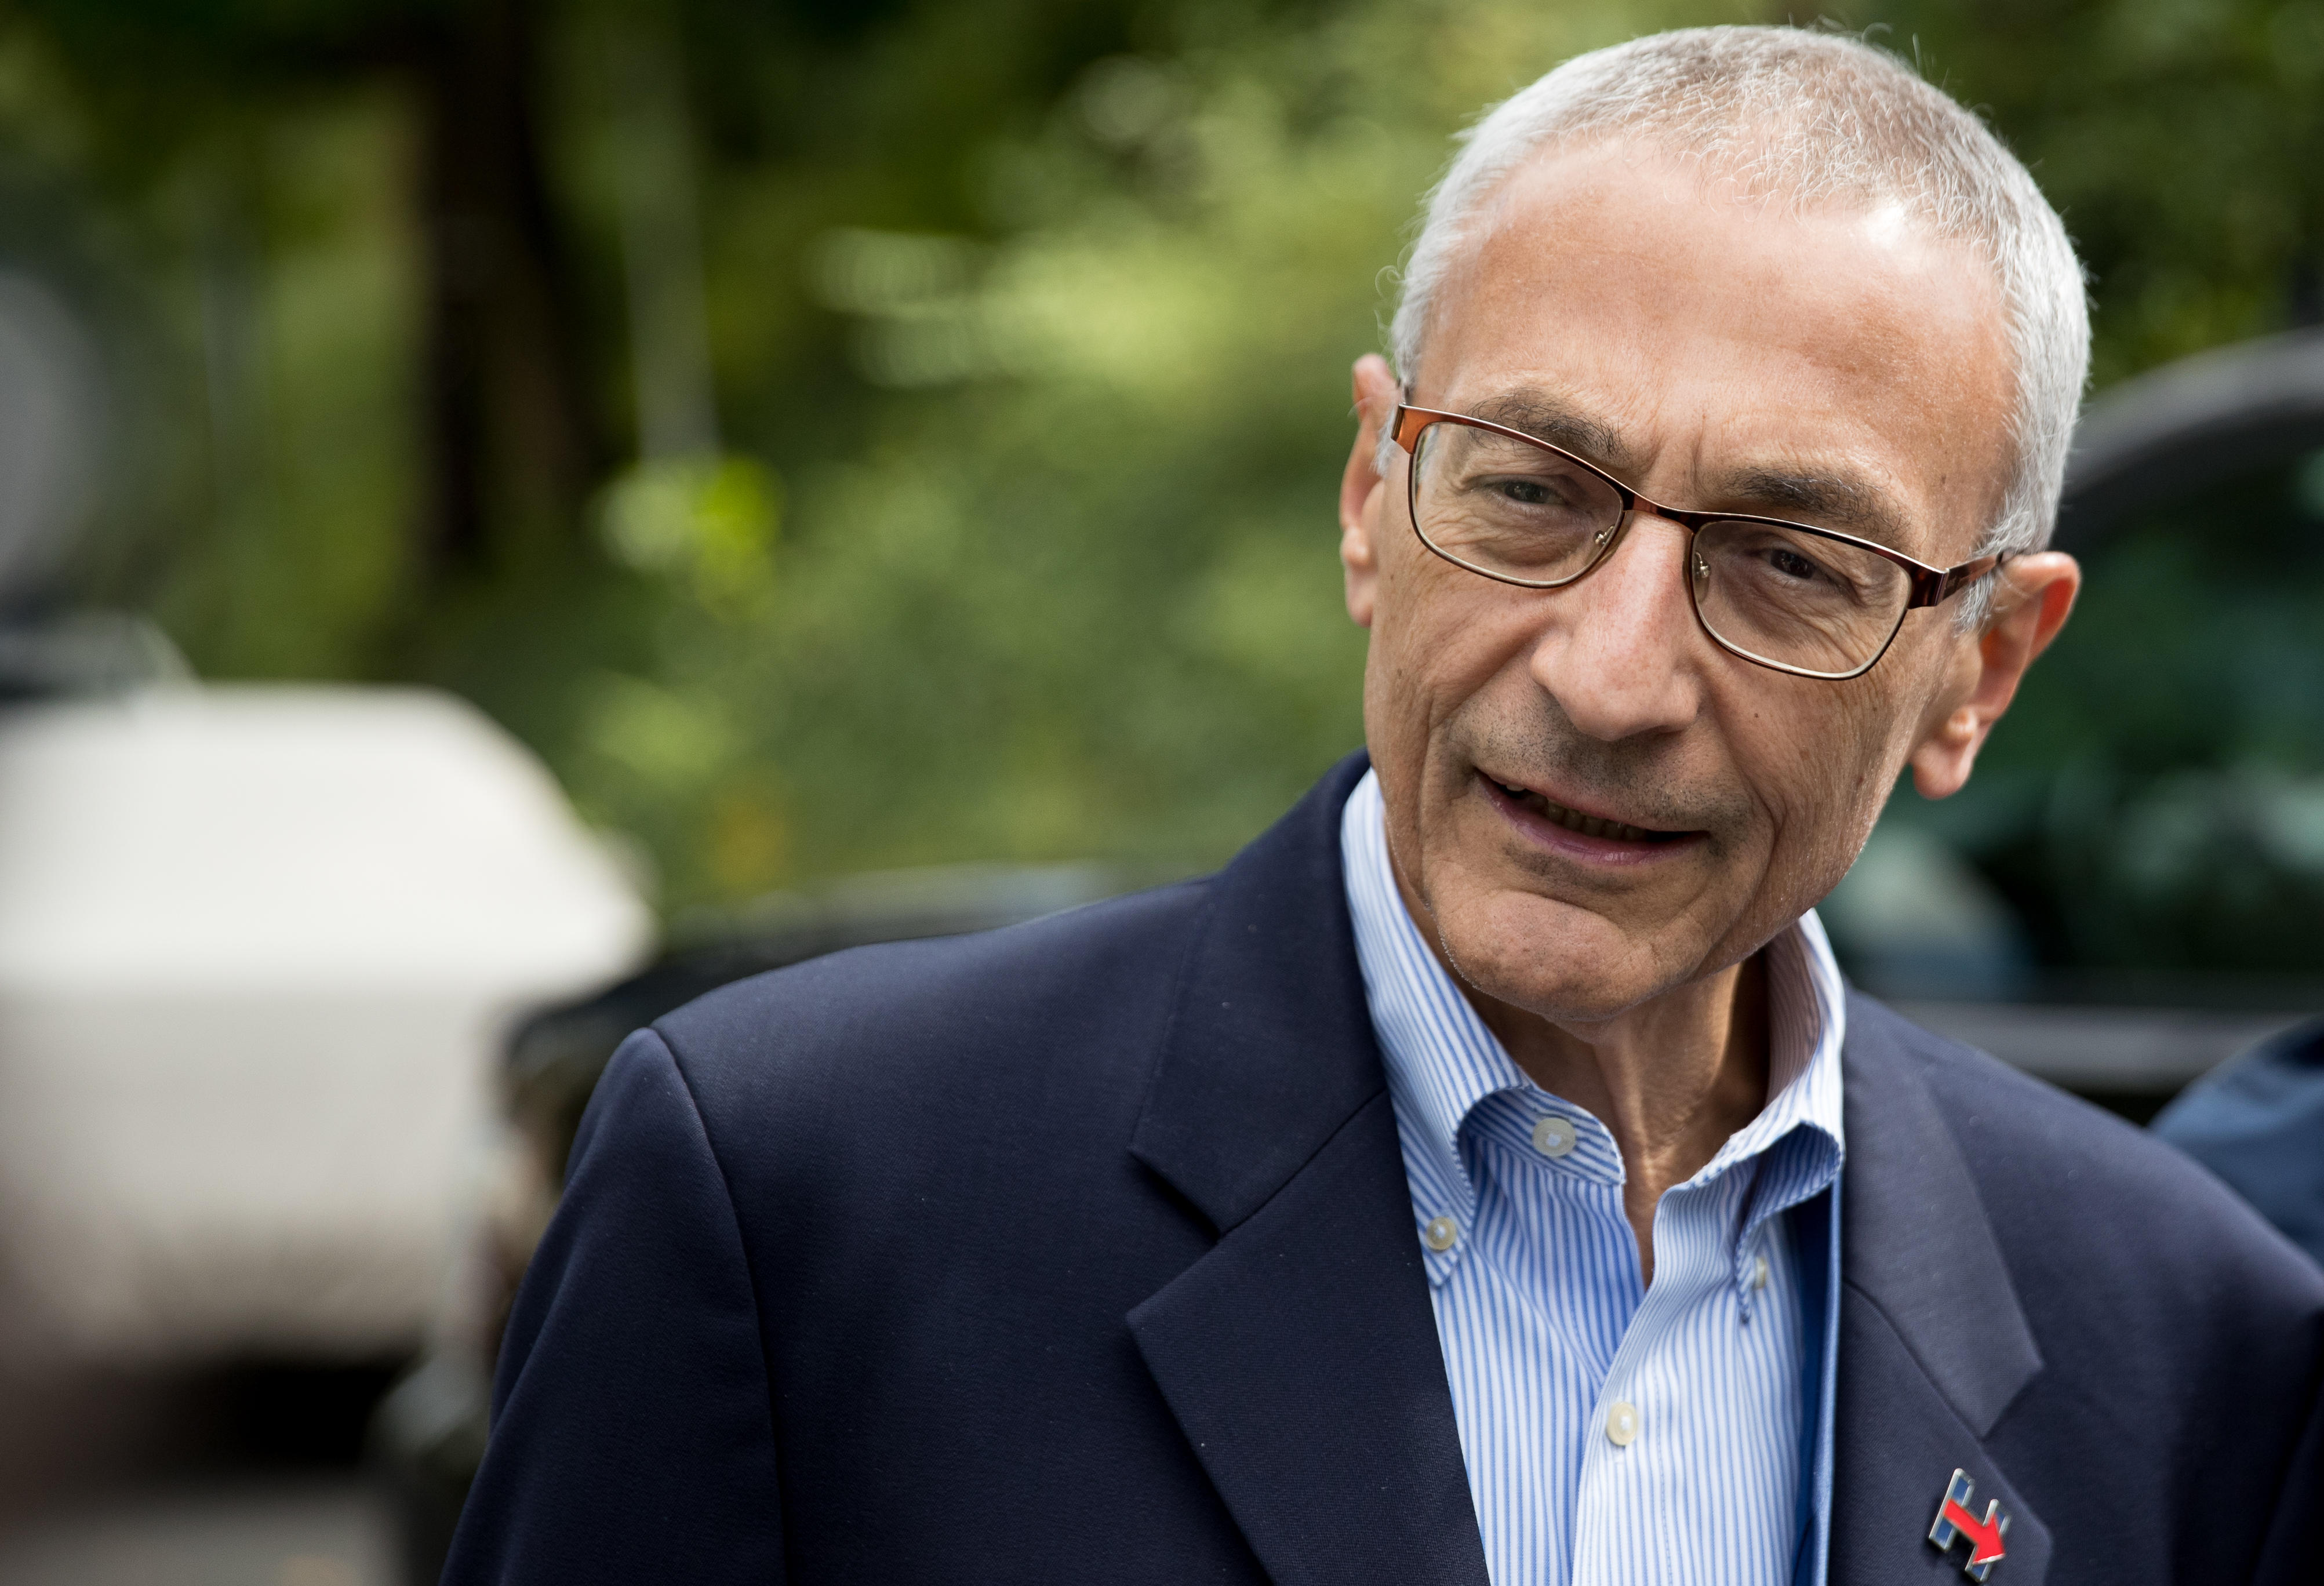 The John Podesta emails released by WikiLeaks - CBS News